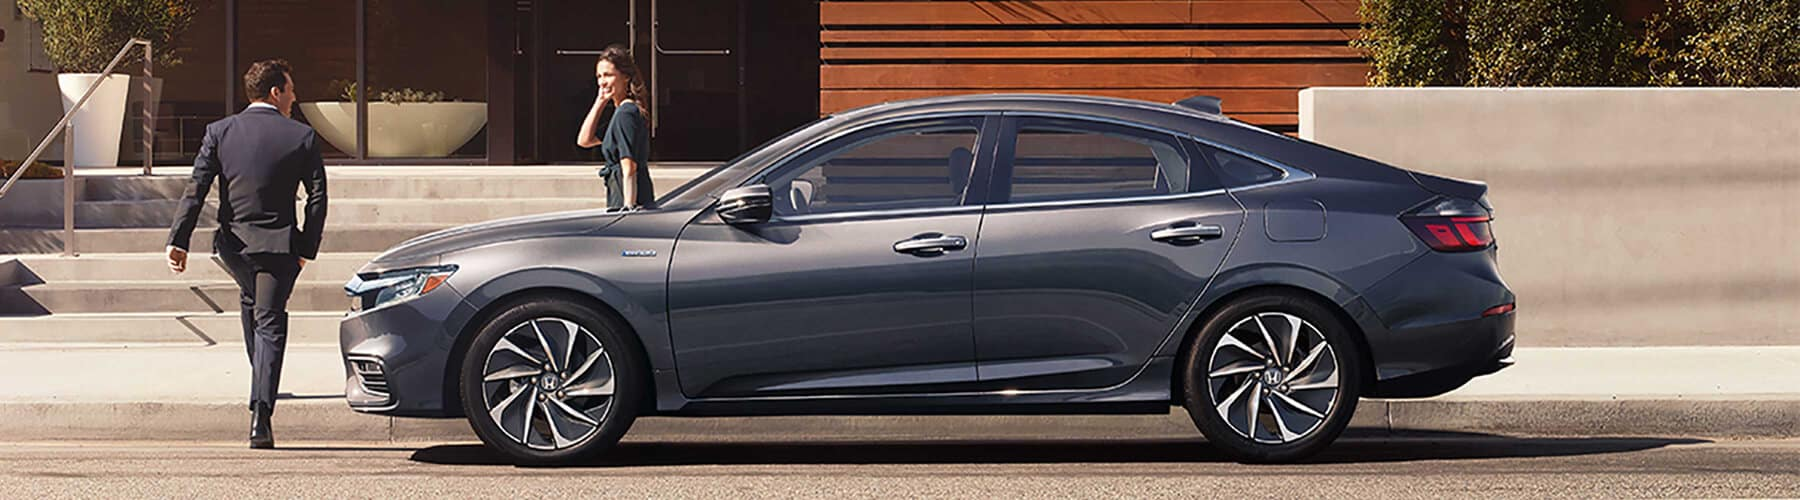 2019 Honda Insight Hybrid Banner